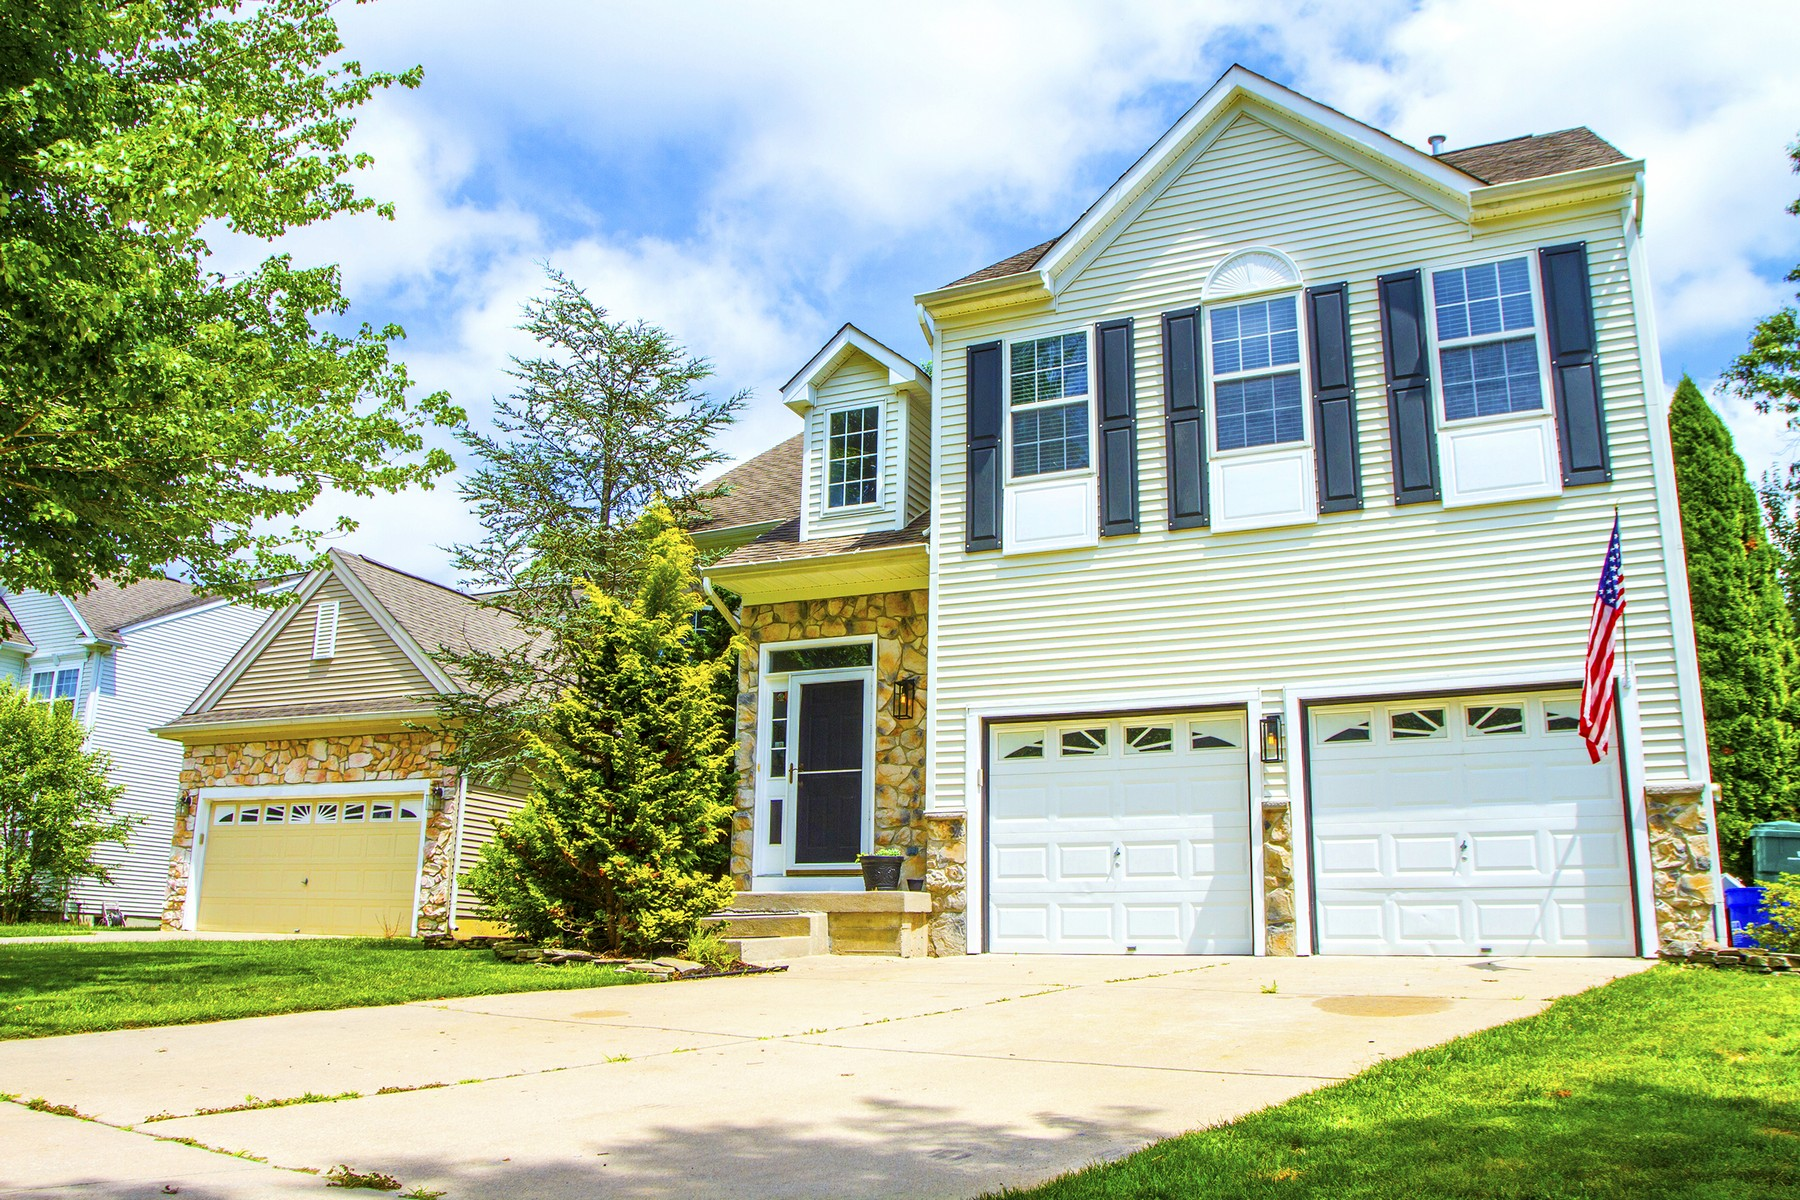 Single Family Homes for Active at Victoria Crossings Home 8 Springton Circle Mays Landing, New Jersey 08330 United States